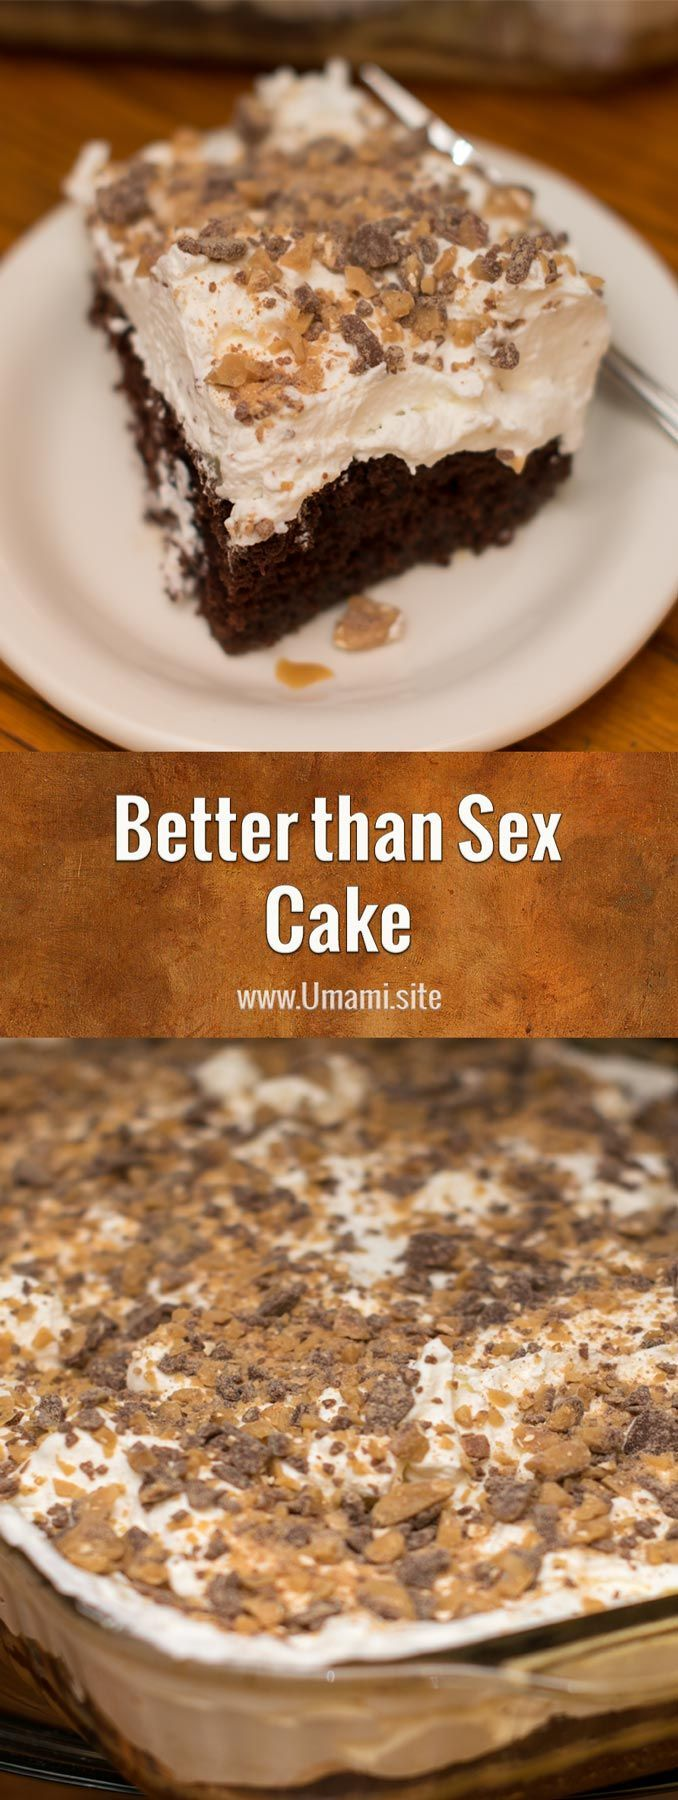 Better than Sex Cake is a sinful dessert with questionable intentions that gets to know you with a little devil's food cake, pours on the caramel, and finishes everything off with a little whip cream.